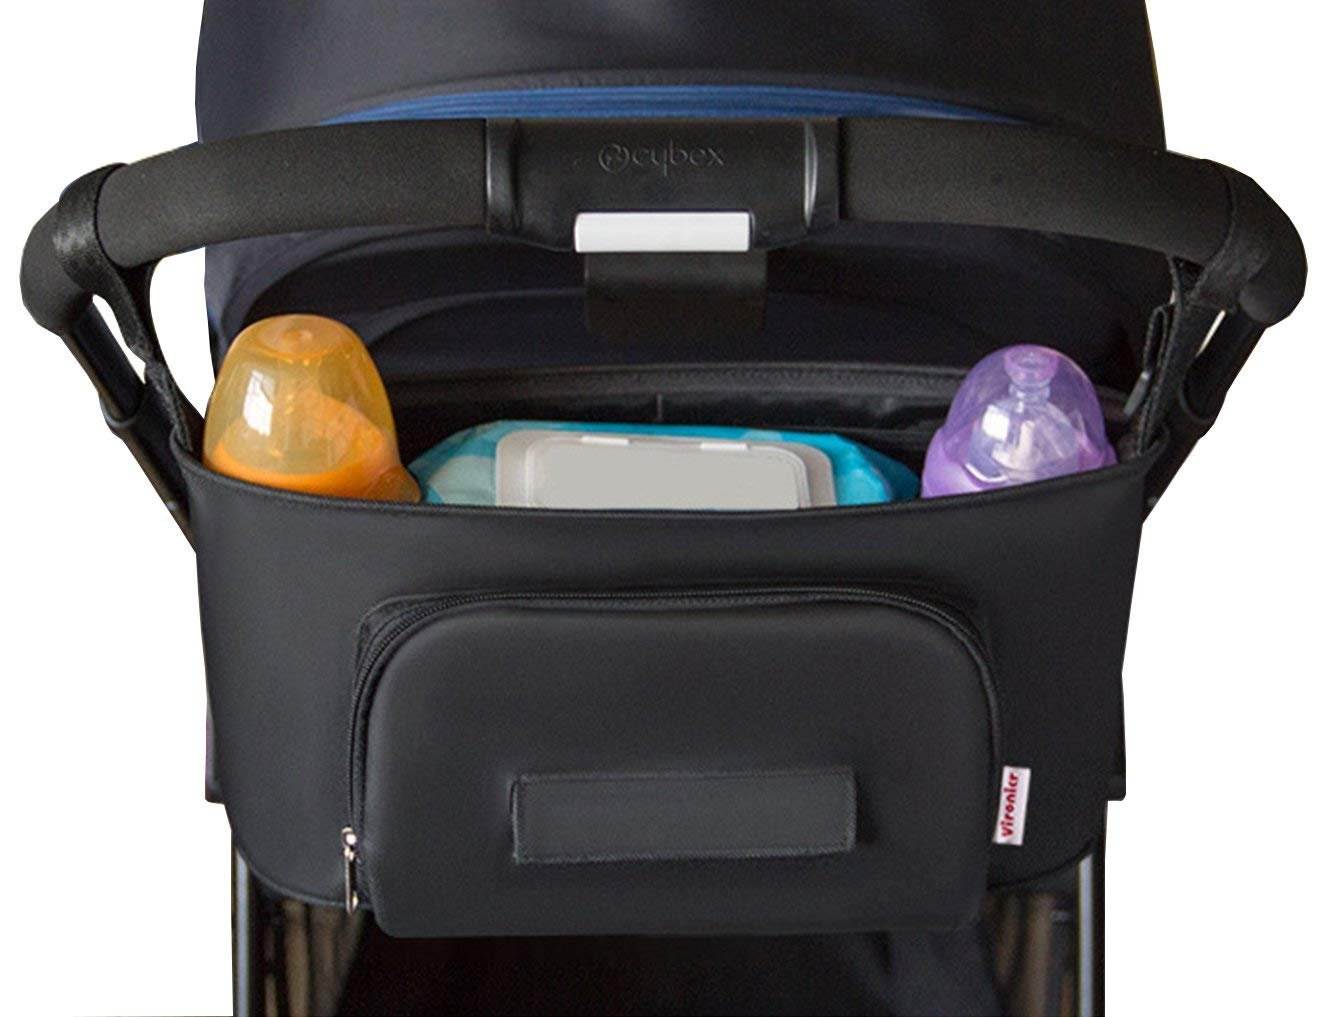 Stroller Organizer with Tissue Pocket Diaper Bag with Insulated Cup Holders - Universal Fit - Premium Quality - Baby Shower Gift Black